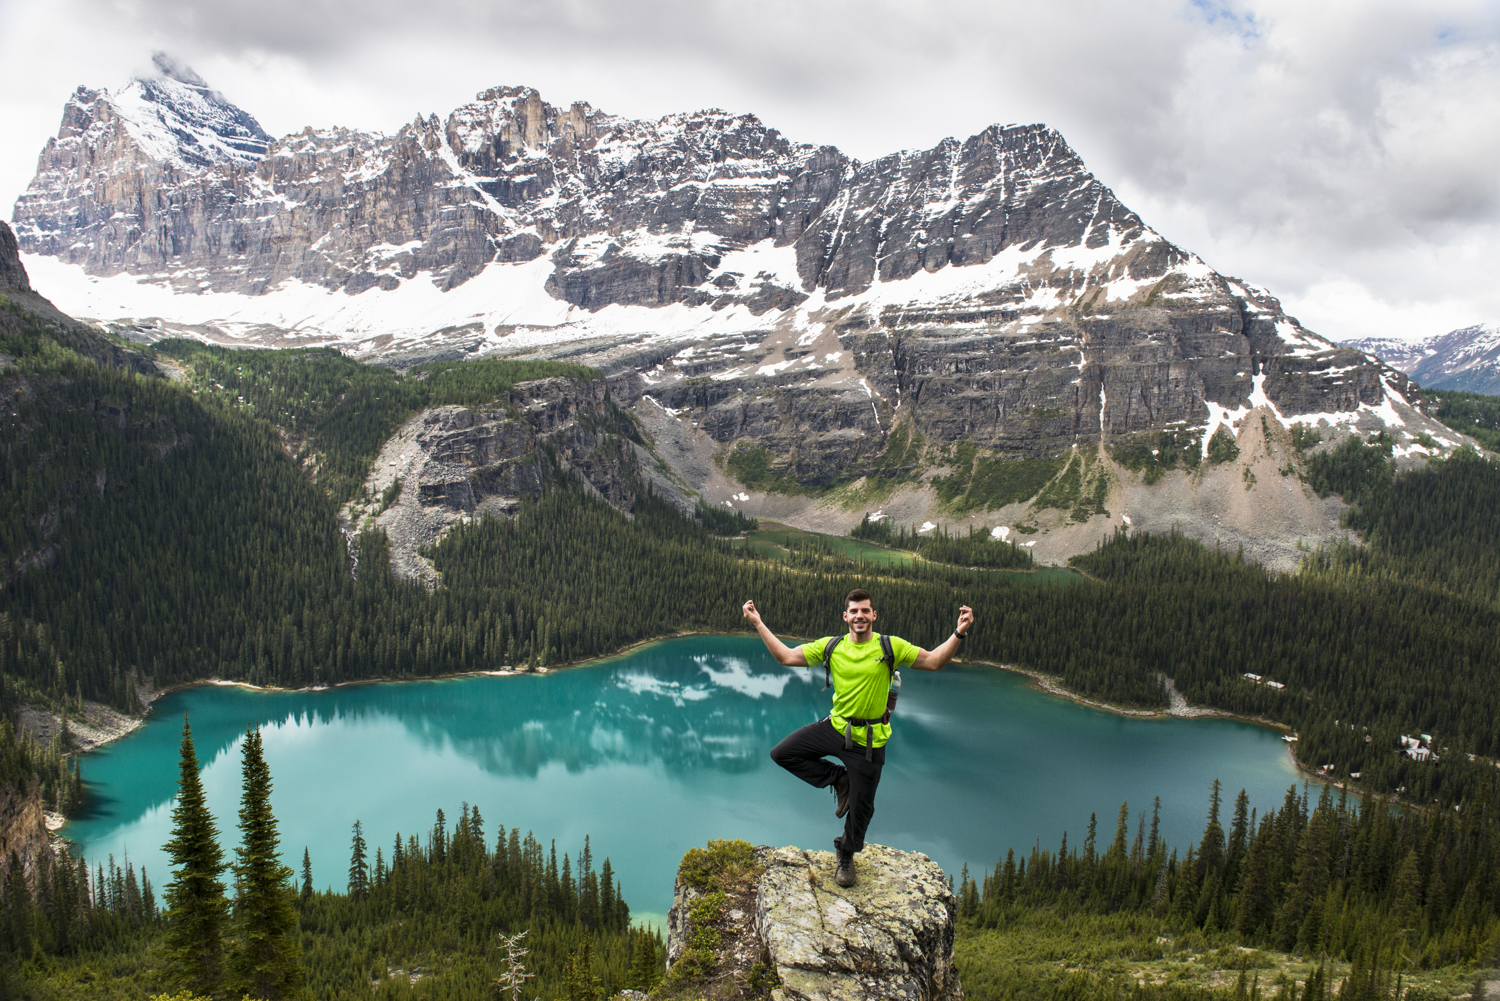 A hiker poses in front of Lake O'hara.